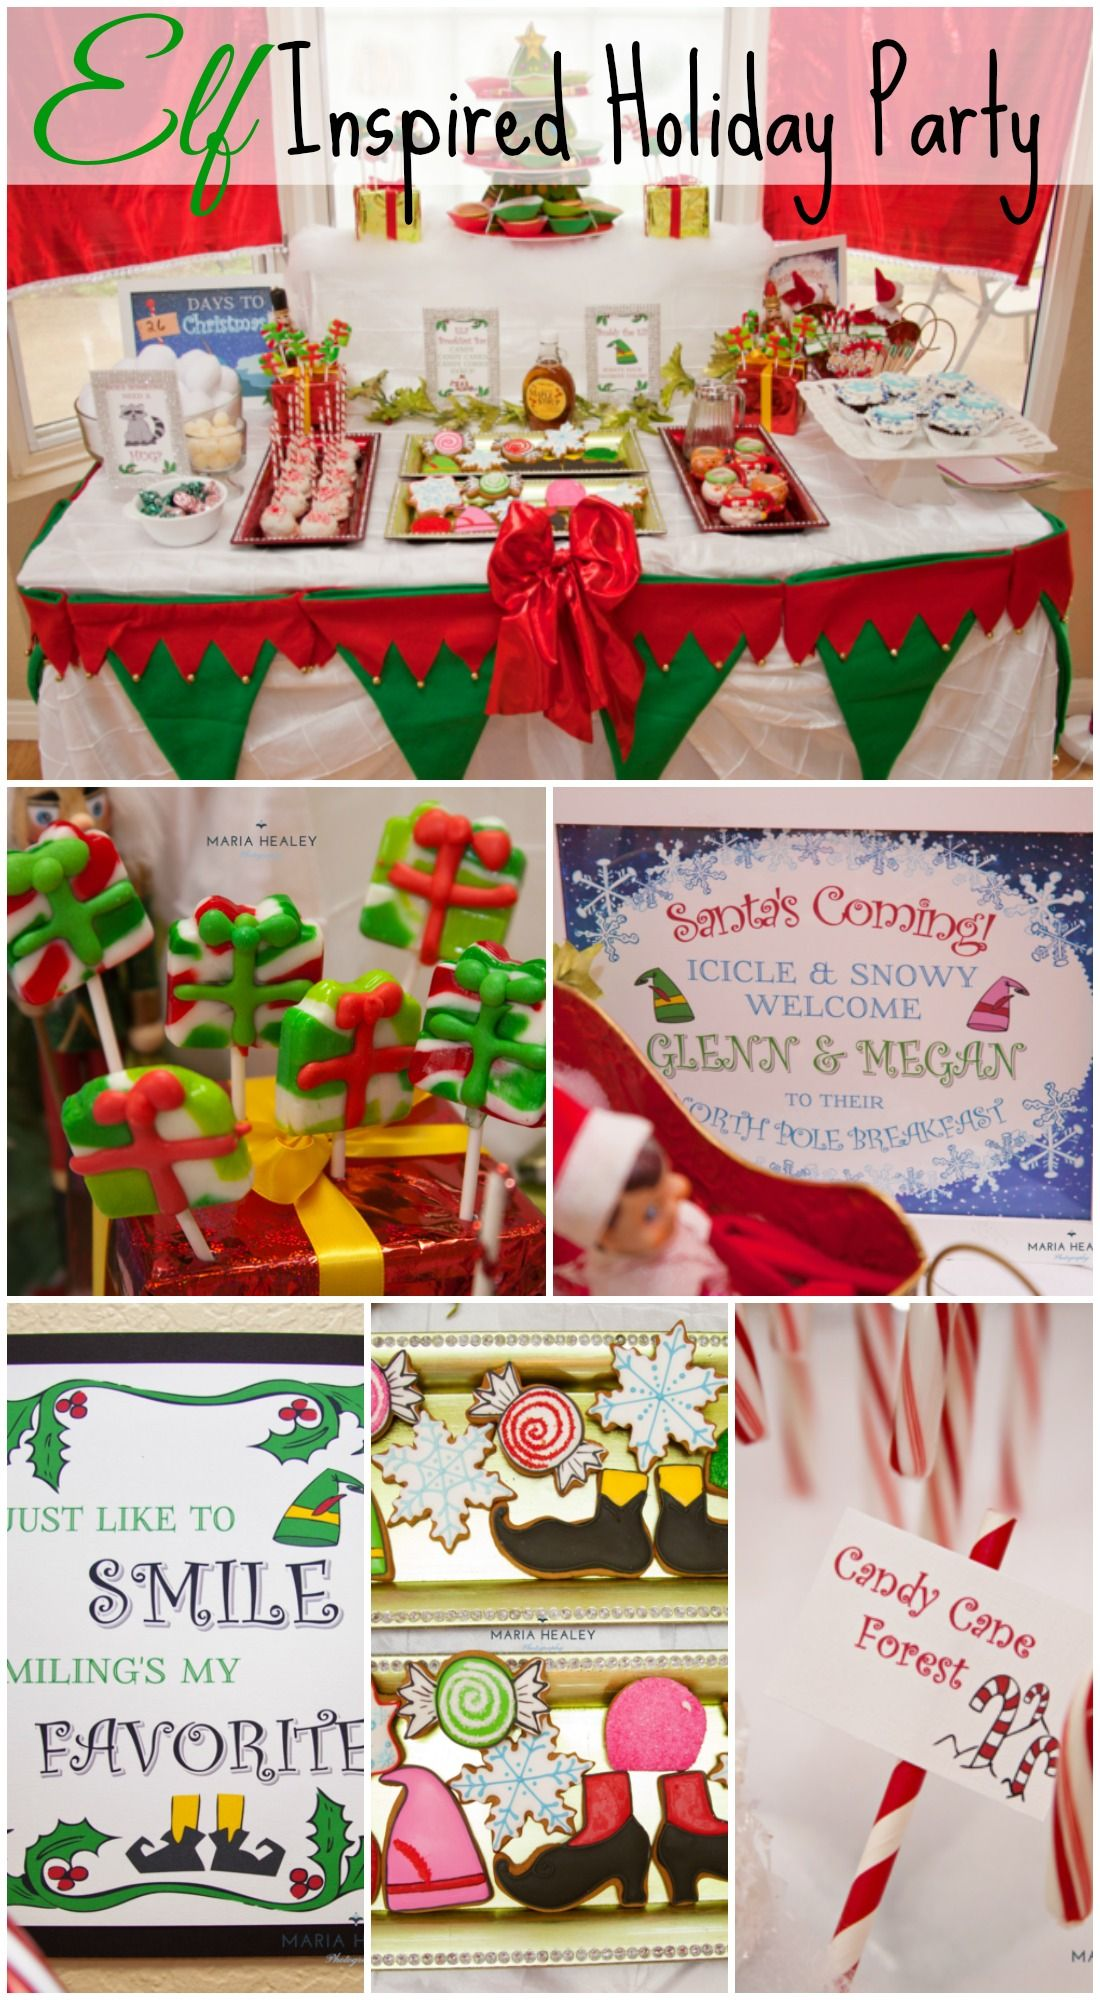 A Christmas Party Based On The Movie Elf See More Party Ideas At Catchmyparty Elf Themed Christmas Party Christmas Party Ideas For Teens Kids Christmas Party